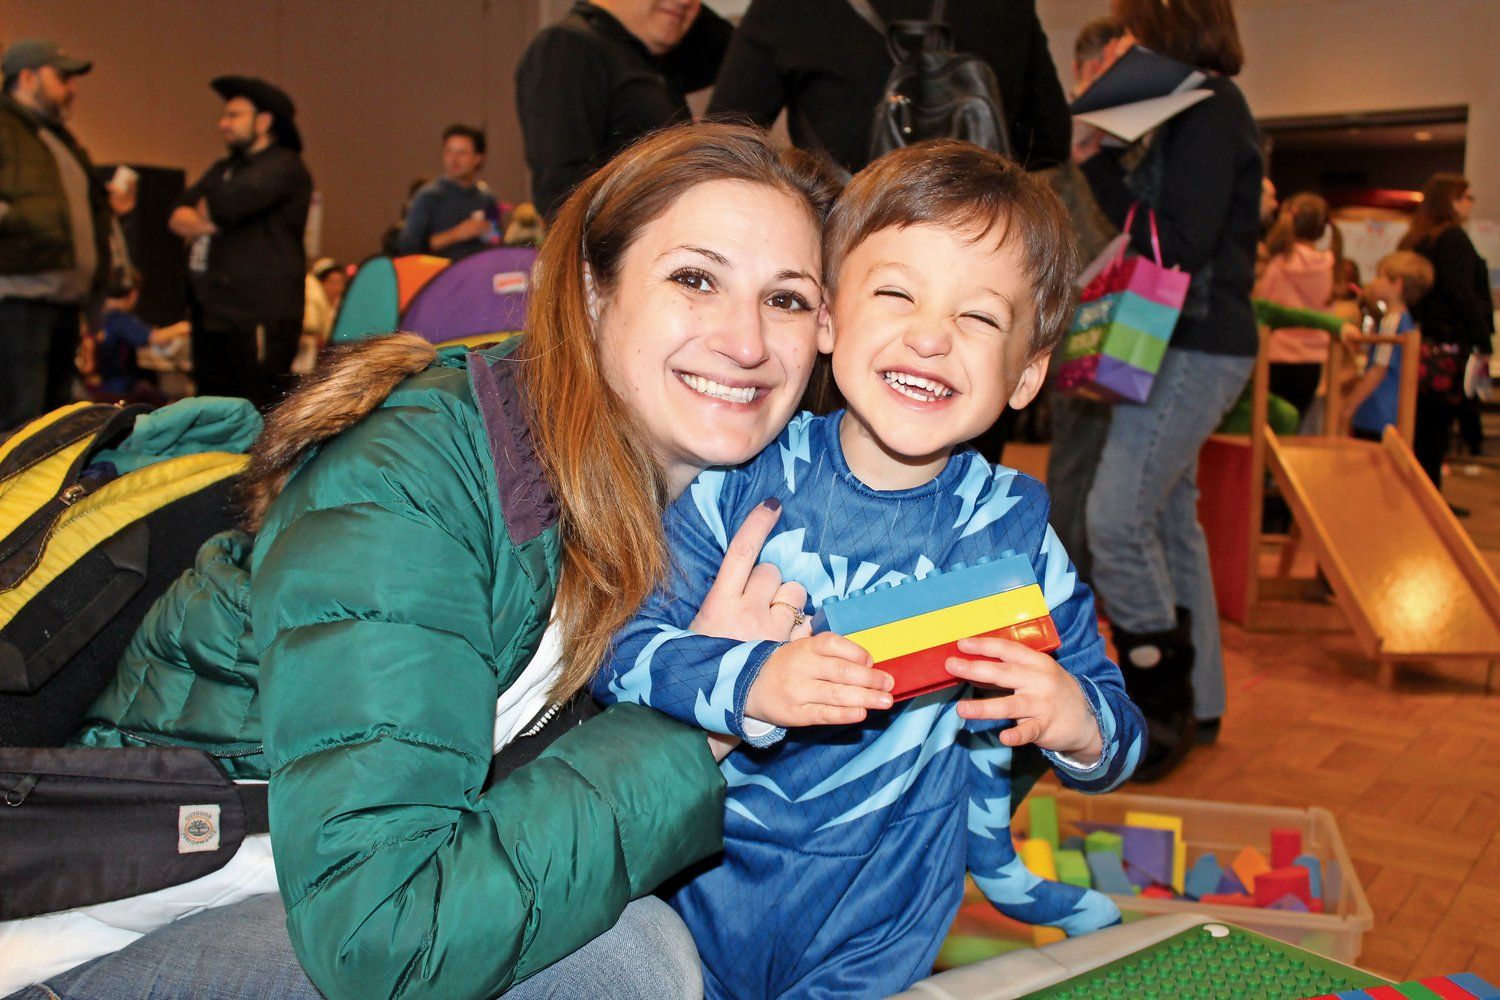 Glen Cove resident Jenna Miller and her son, Hunter, 3, played with LEGOs at the carnival.